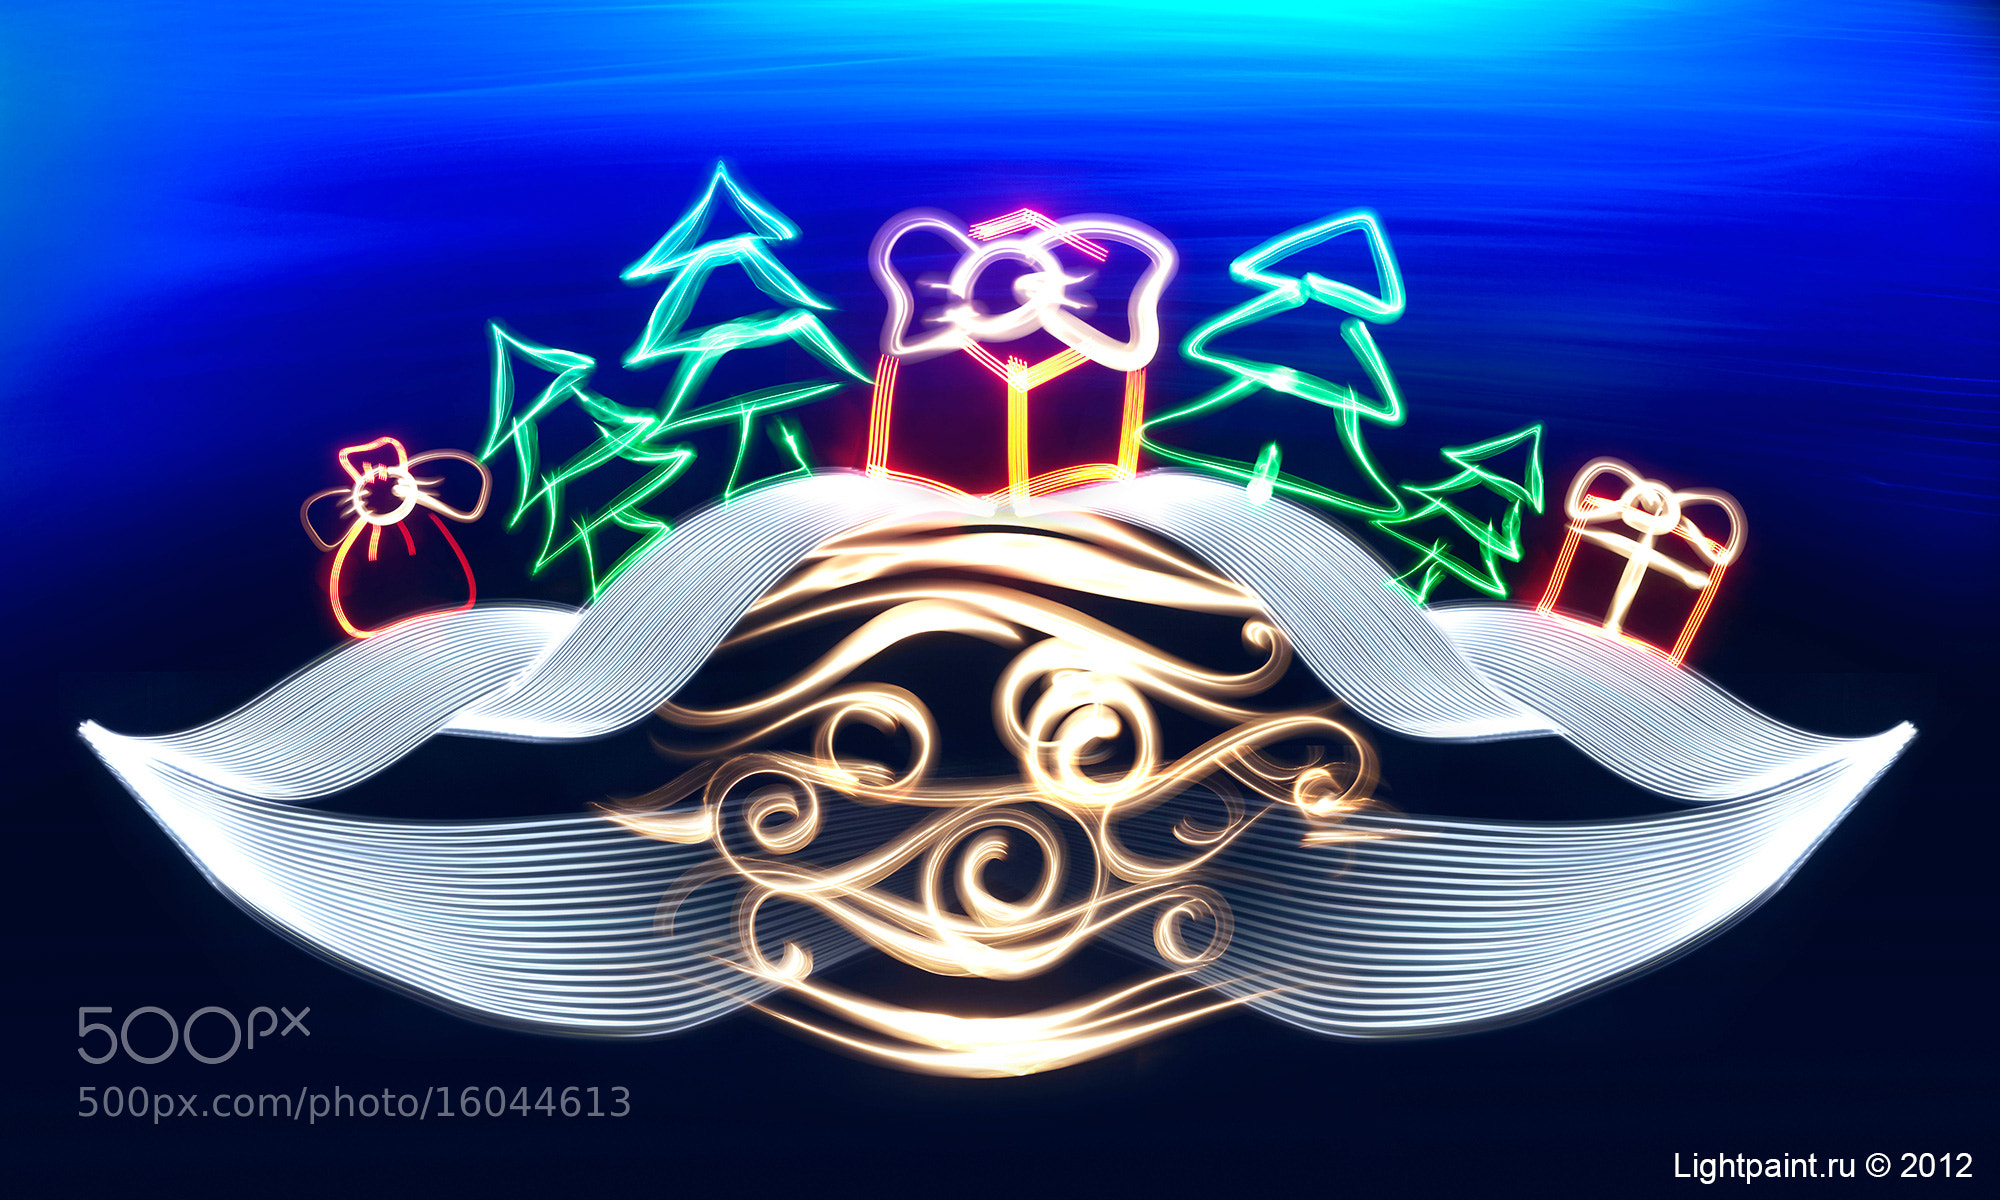 Photograph Happy New Year 2013 :) by Lightpaint.ru Moscow, Russia on 500px